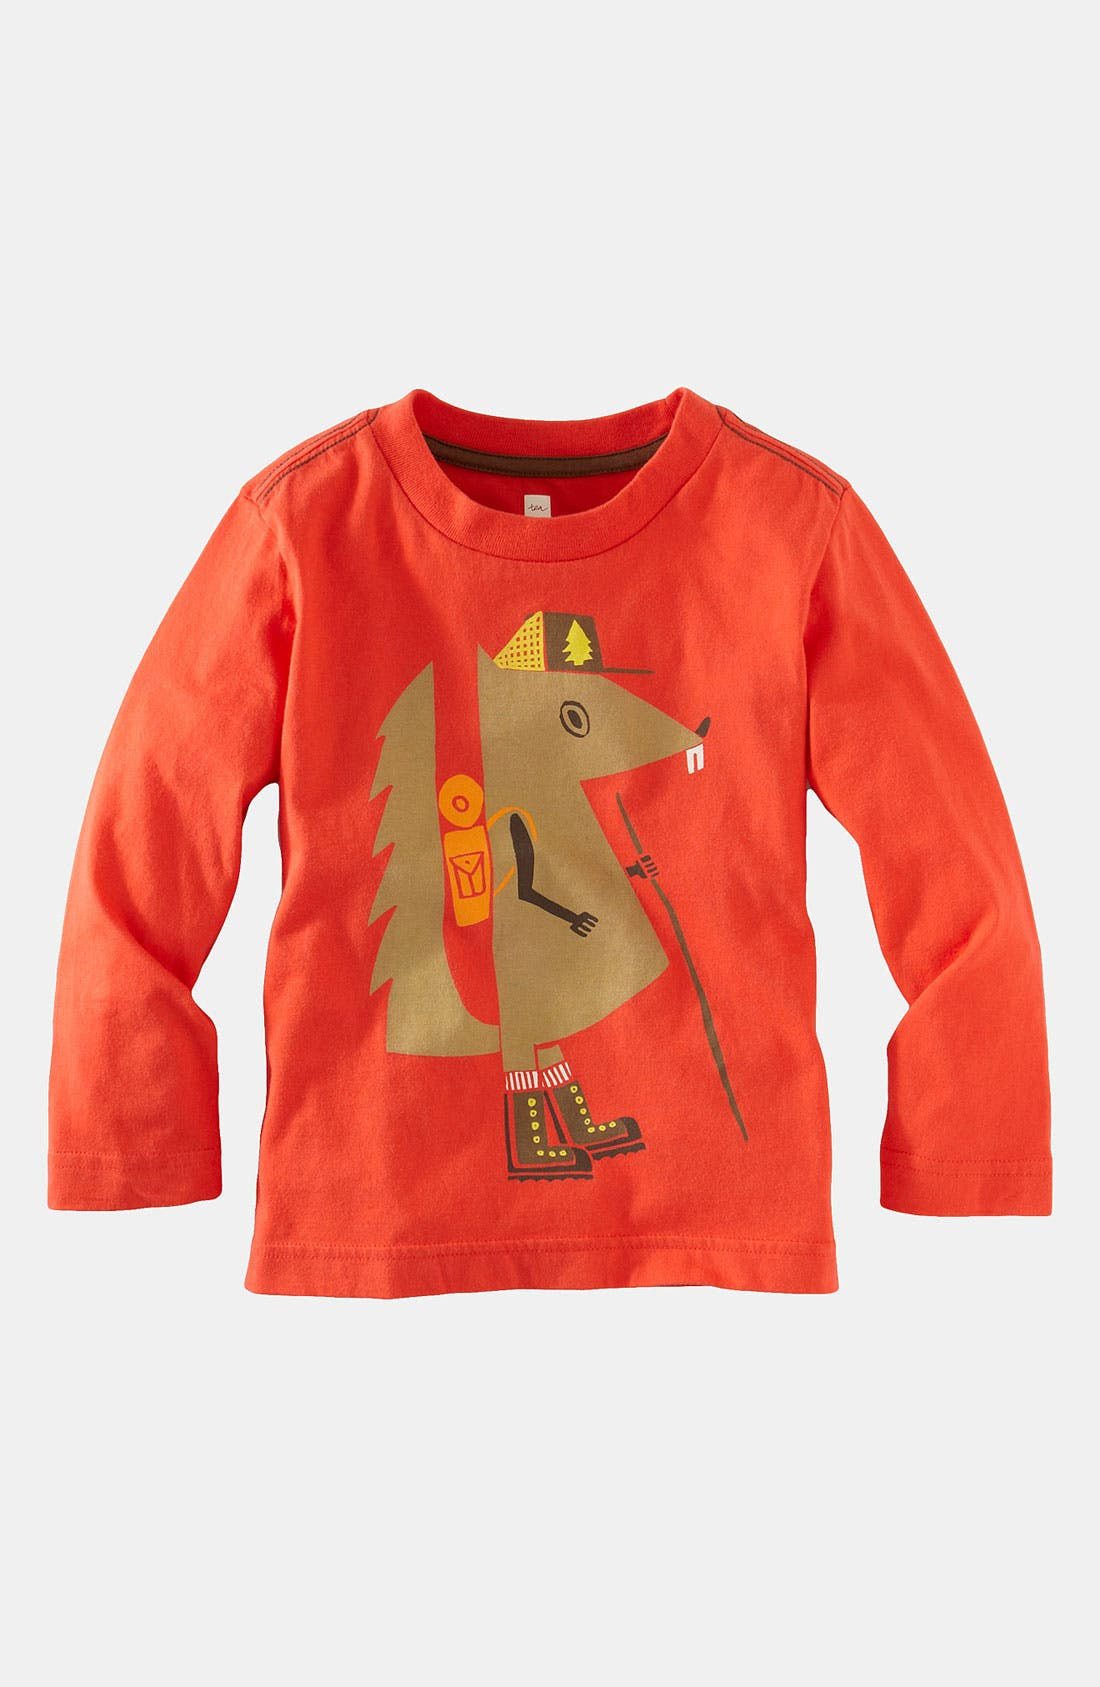 Main Image - Tea Collection 'Wanderer' T-Shirt (Toddler)